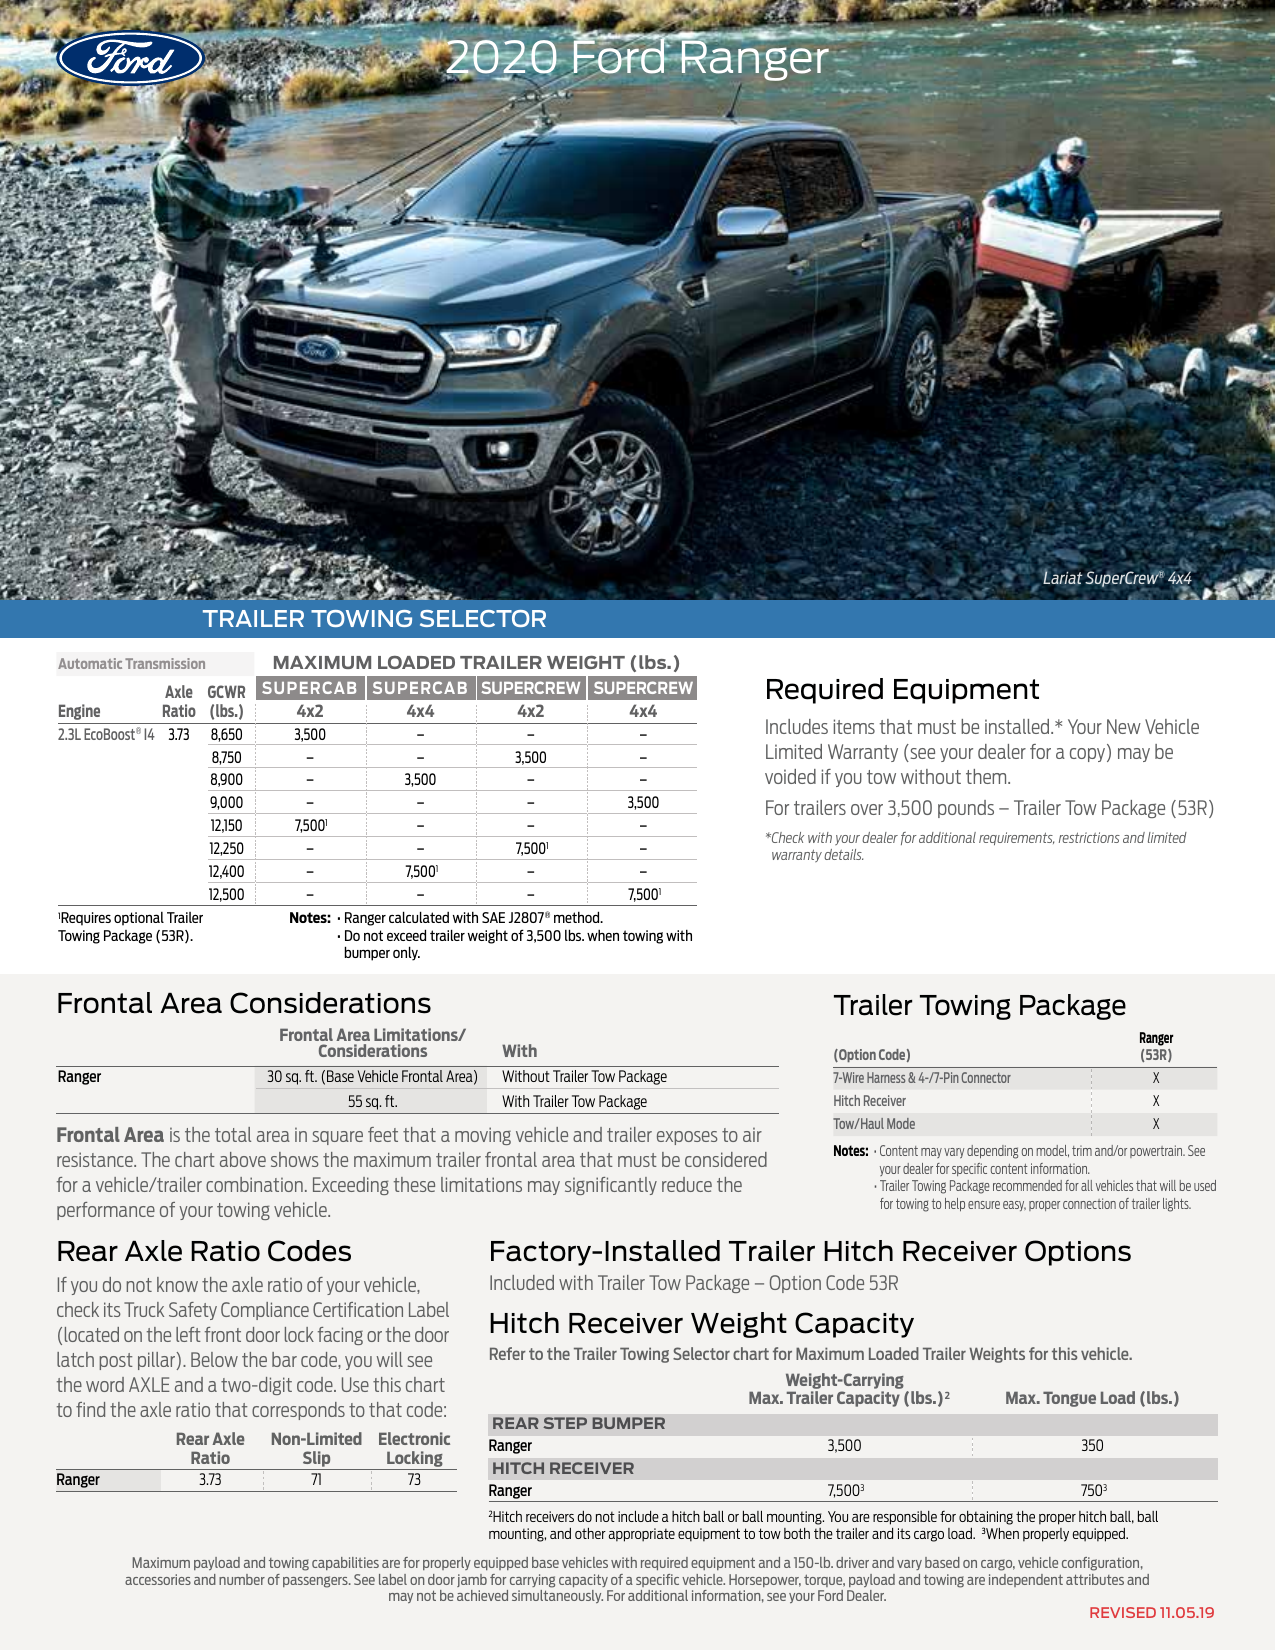 2020 Ford Ranger Specific Towing Guide Pdf 2019 Ford Ranger And Raptor Forum 5th Generation Ranger5g Com